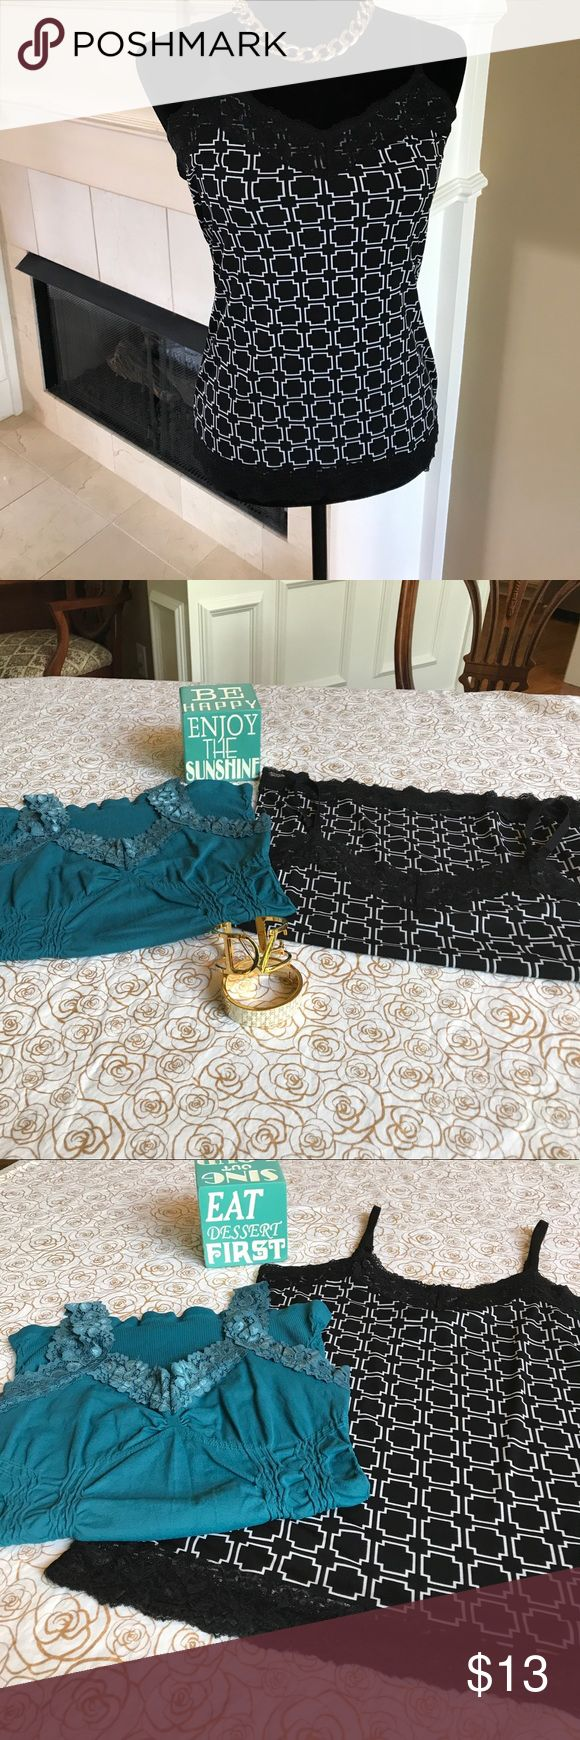 WHBM B/W Cami & M.Rena Teal Cami Combo WHBM Black/White Cami Top Size Small with black lace at top/bottom and adjustable straps. Modern design and super versatile.  Wear alone or layer it.  Included in this listing is a M.Rena Teal Cami Top One Size Fits All: 92% Nylon/8% Spandex. White House Black Market Tops Camisoles